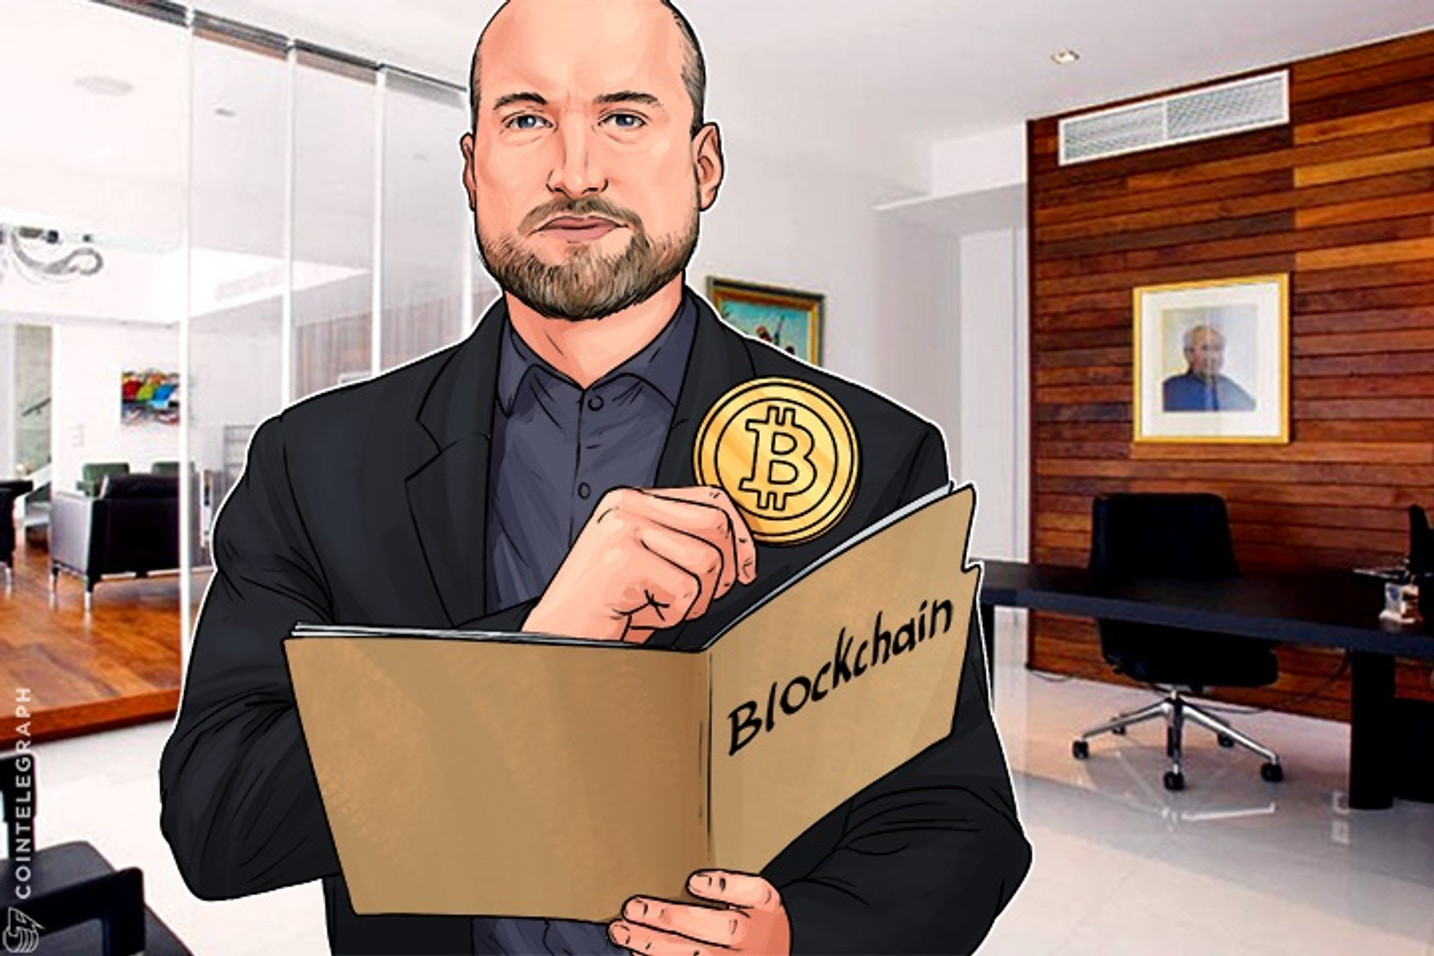 Only Proven Use Case For Blockchain Is Bitcoin's Blockchain, Says Bankymoon CEO